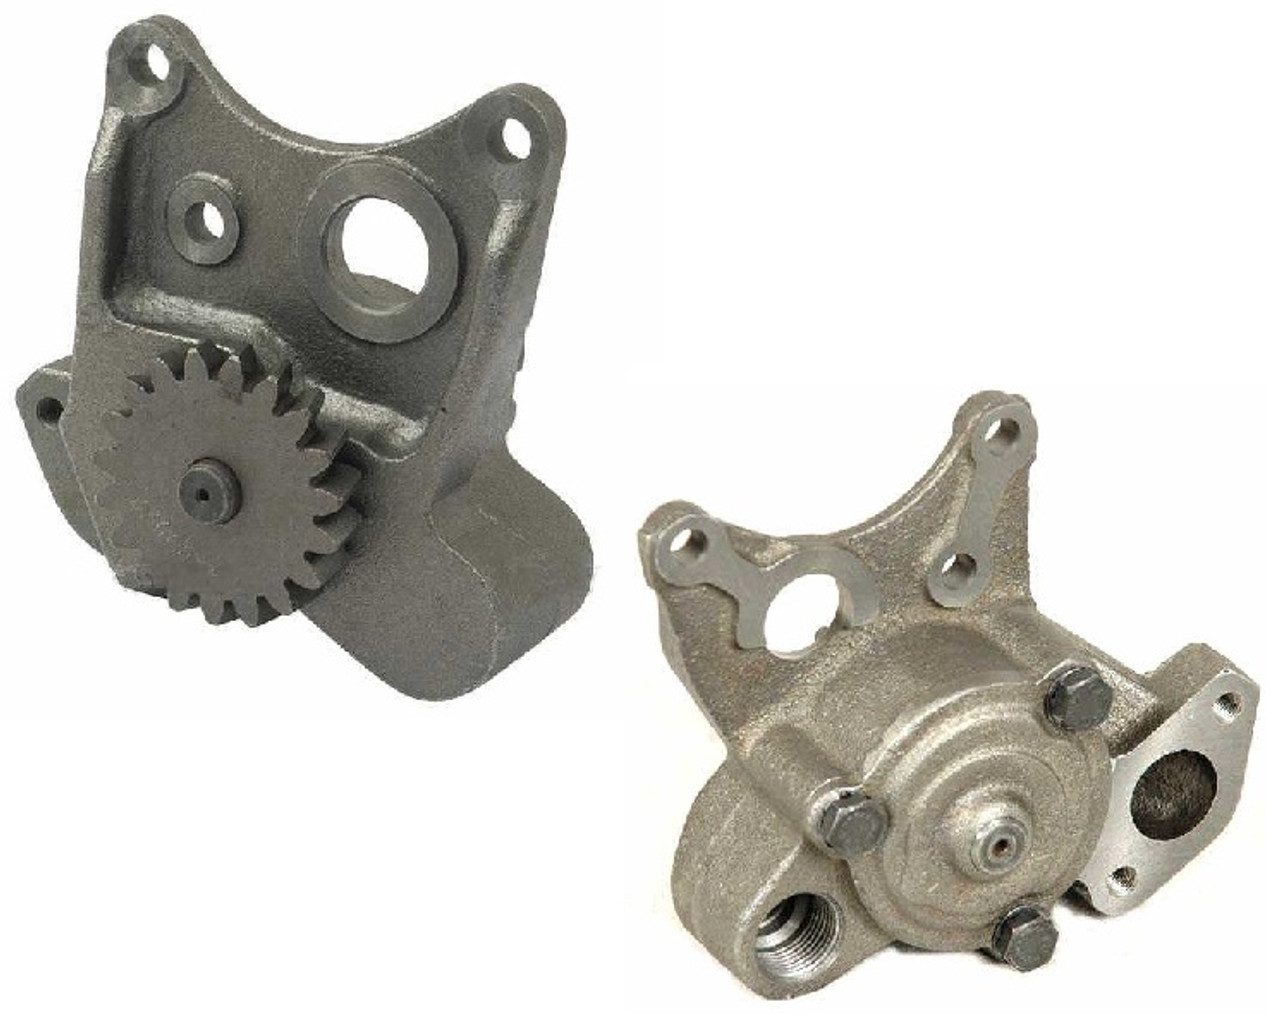 Perkins M90 Oil Pump naturally aspirated and turbo charged - parts4engines.com